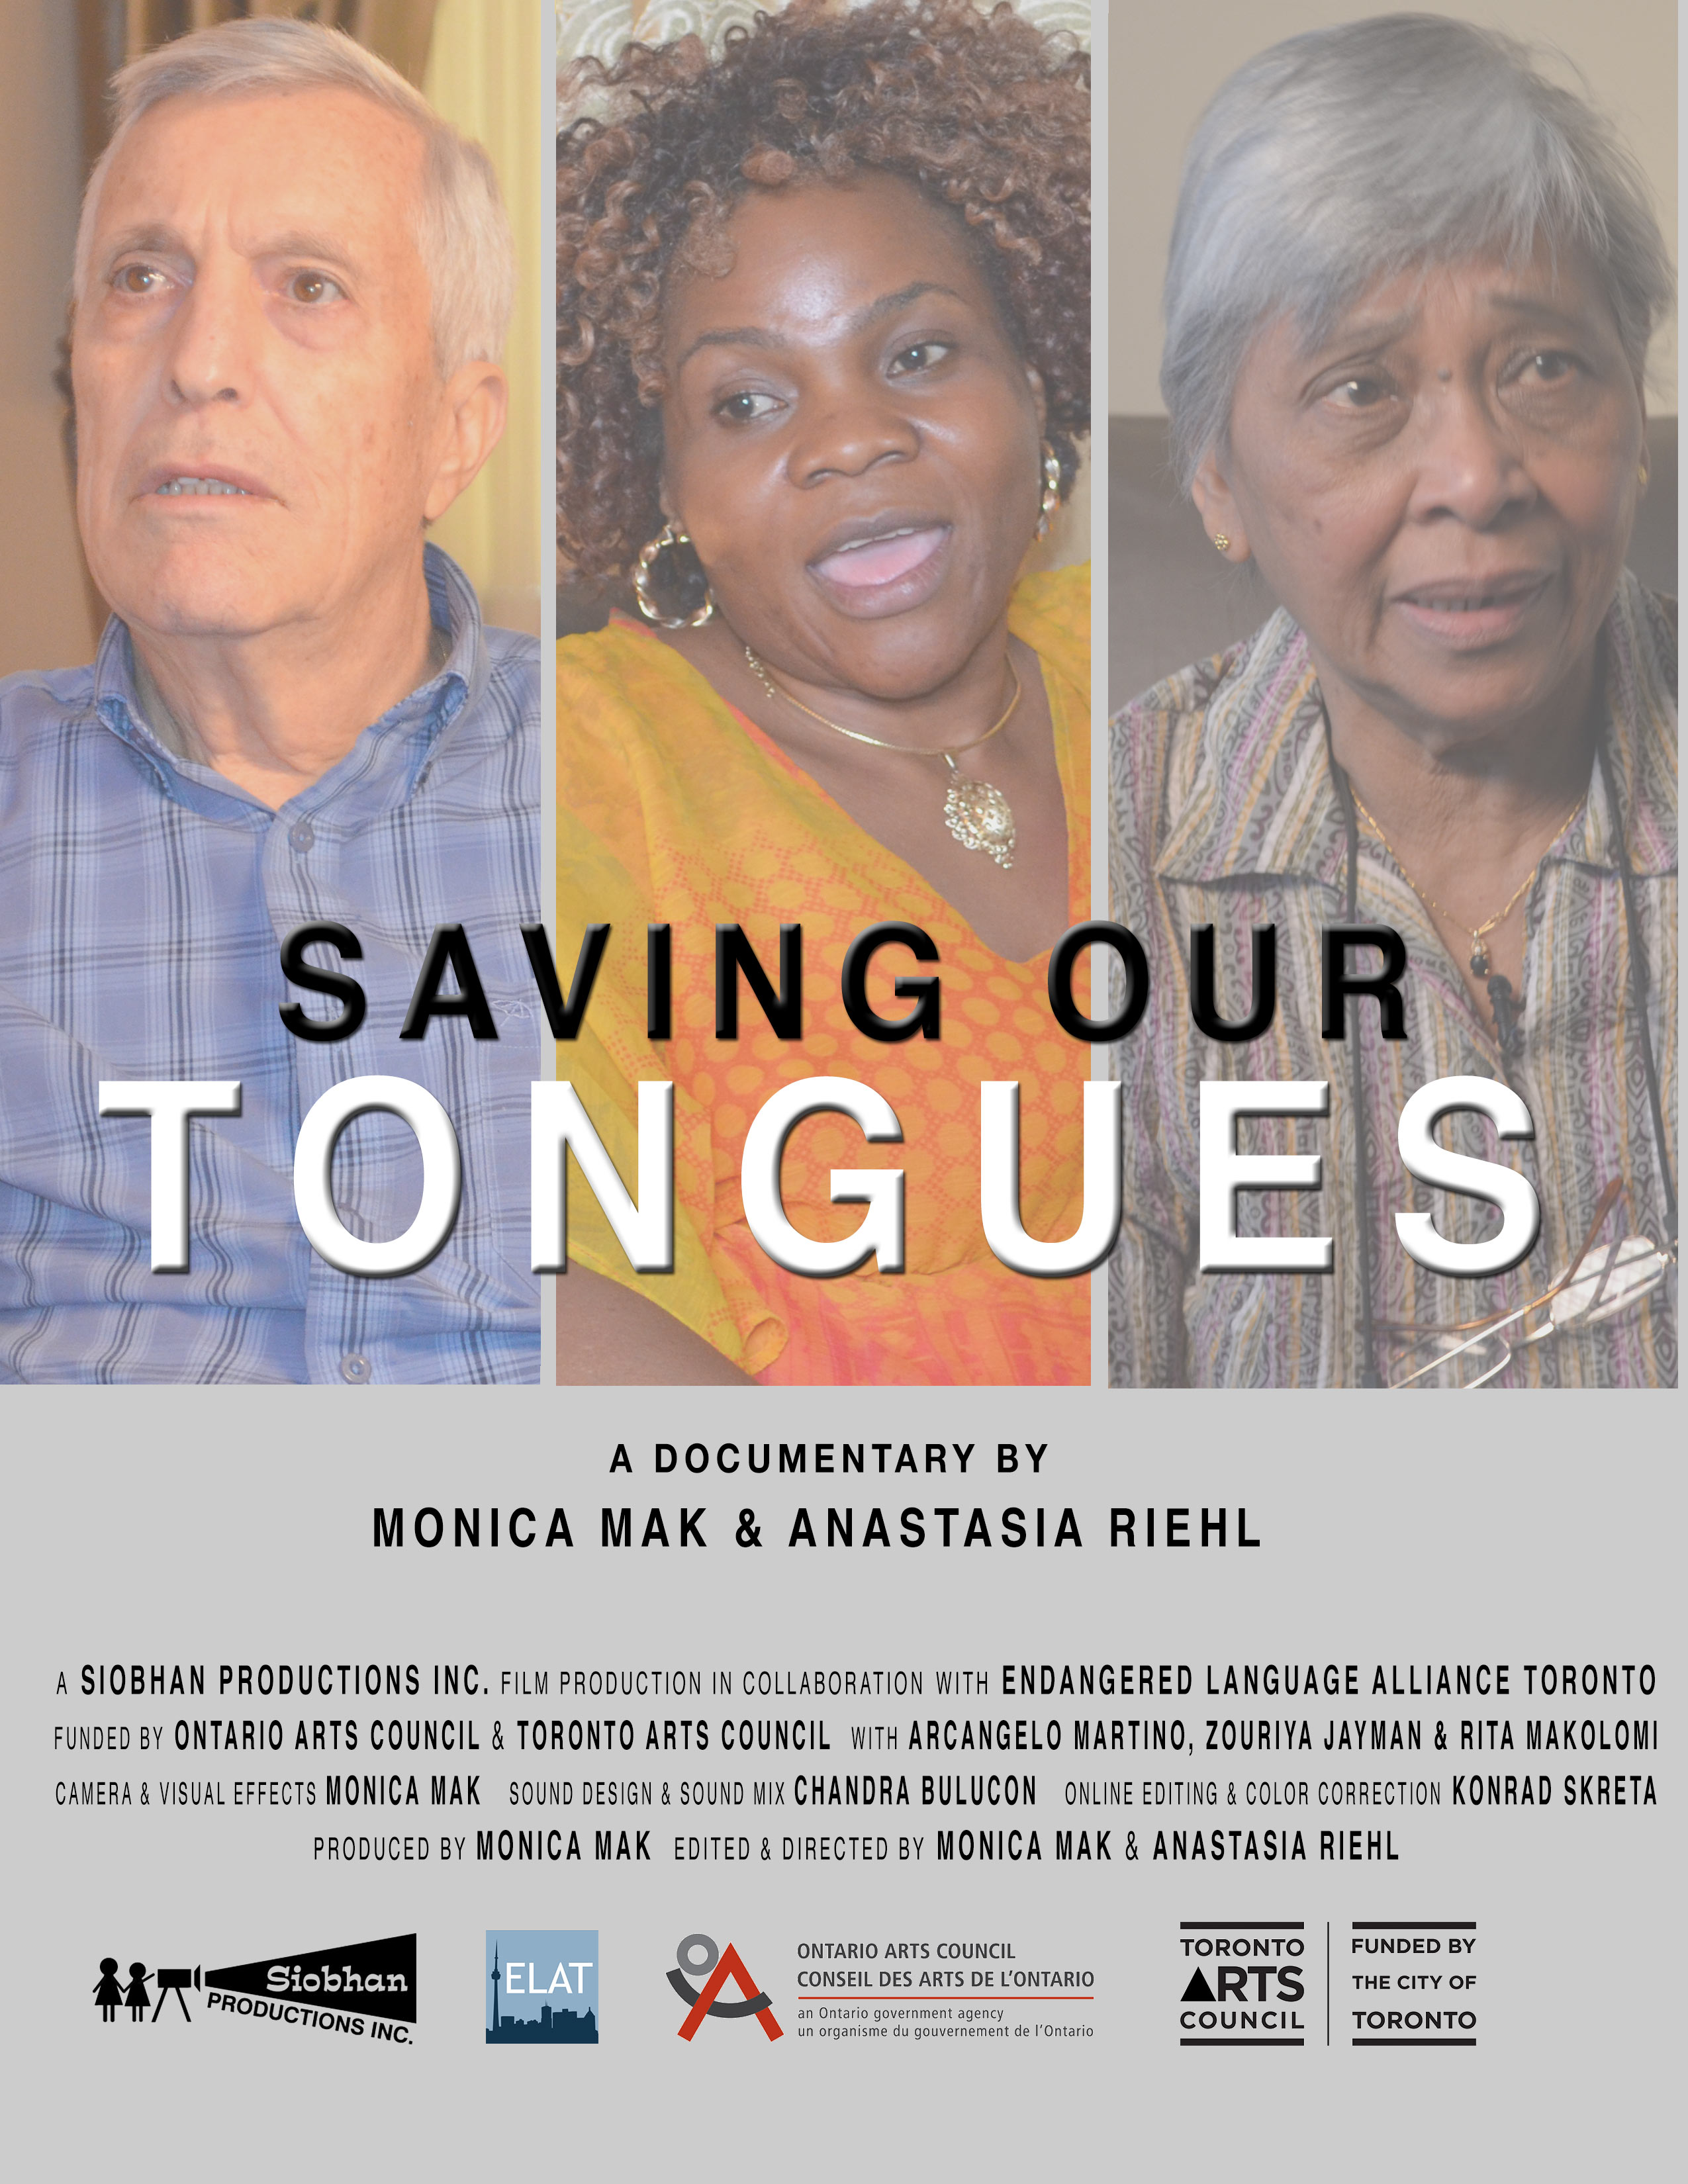 Poster for the documentary film Saving Our Tongues, featuring the photos of the three people interviewed in the film.